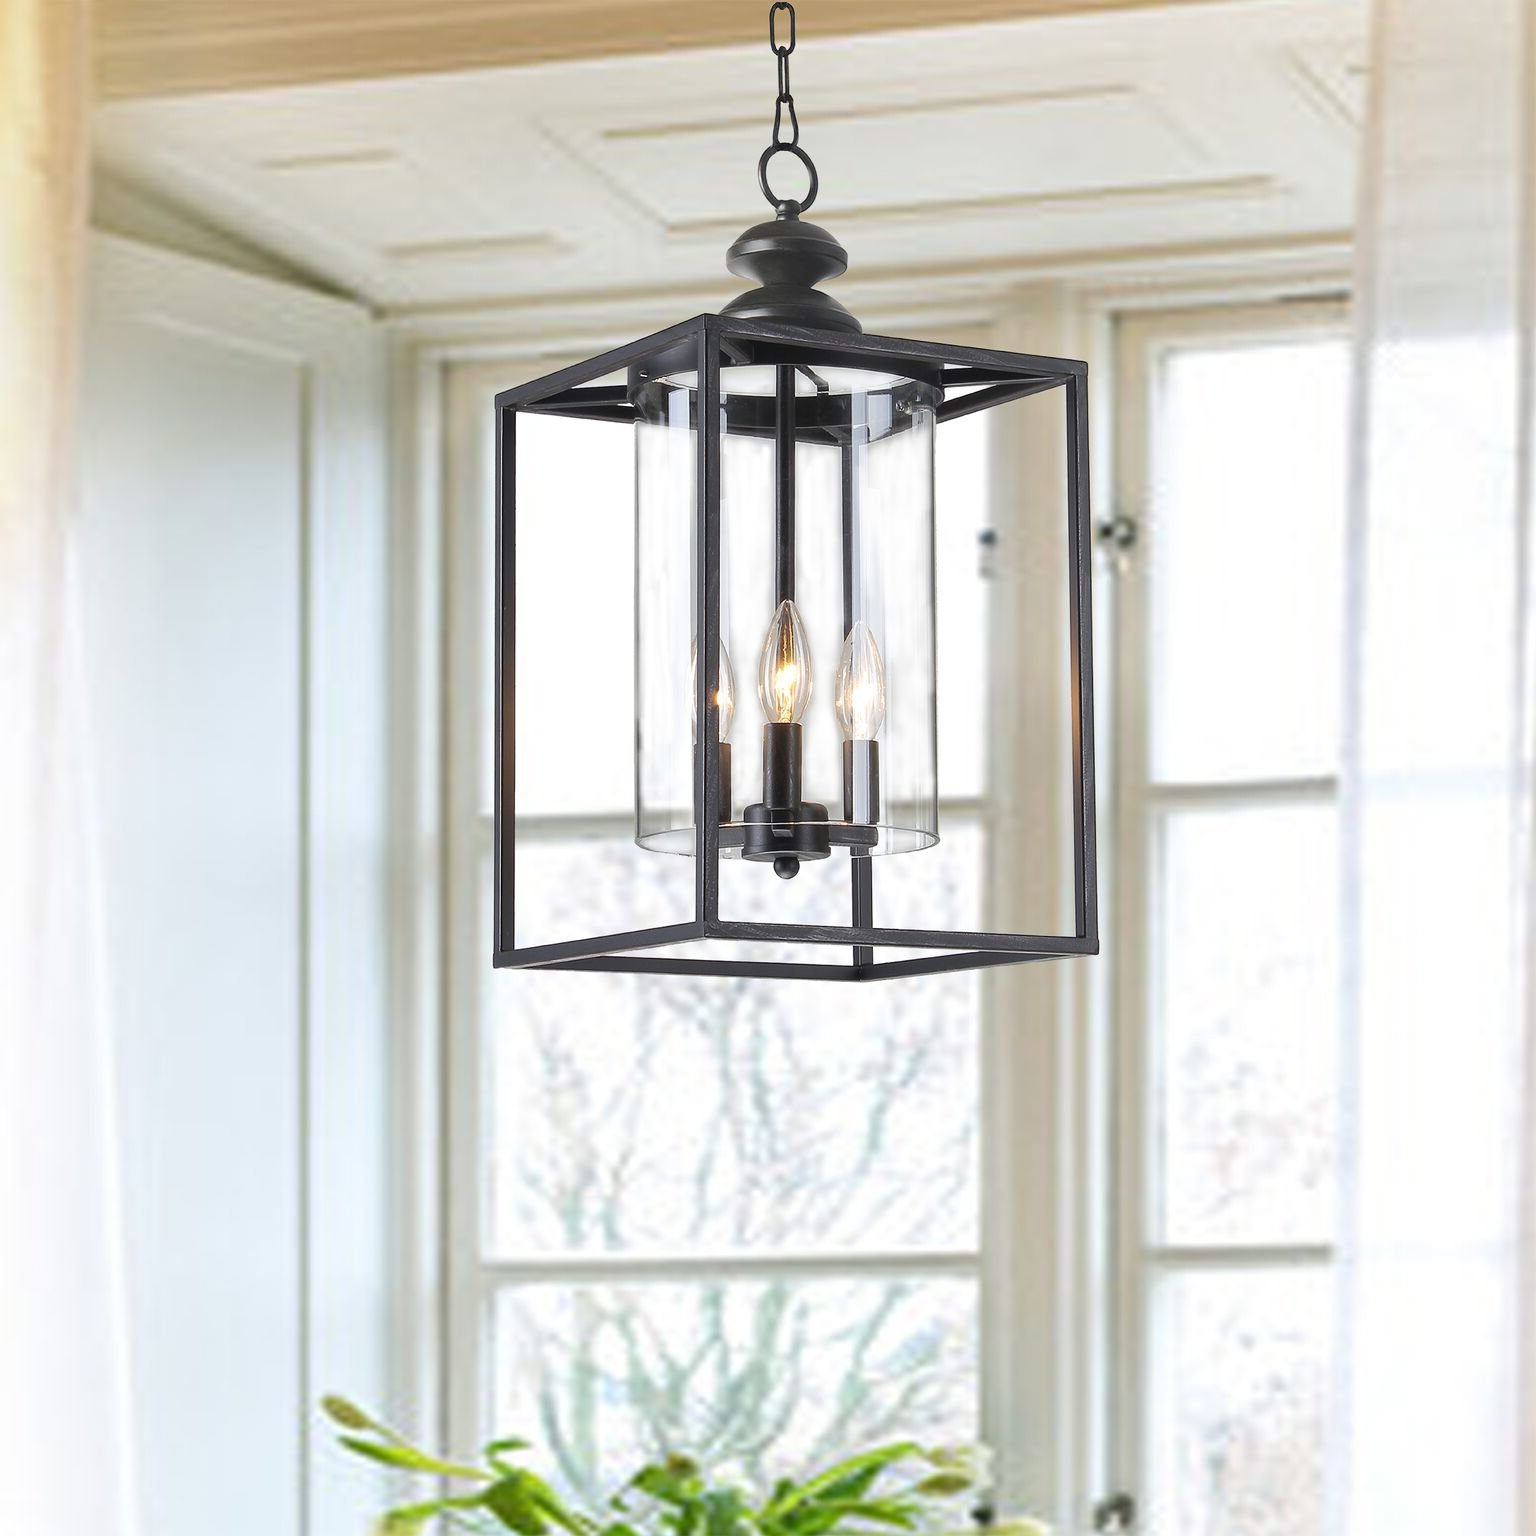 2020 Finnick 3-Light Lantern Pendants regarding Chesson 3-Light Square/rectangle Pendant